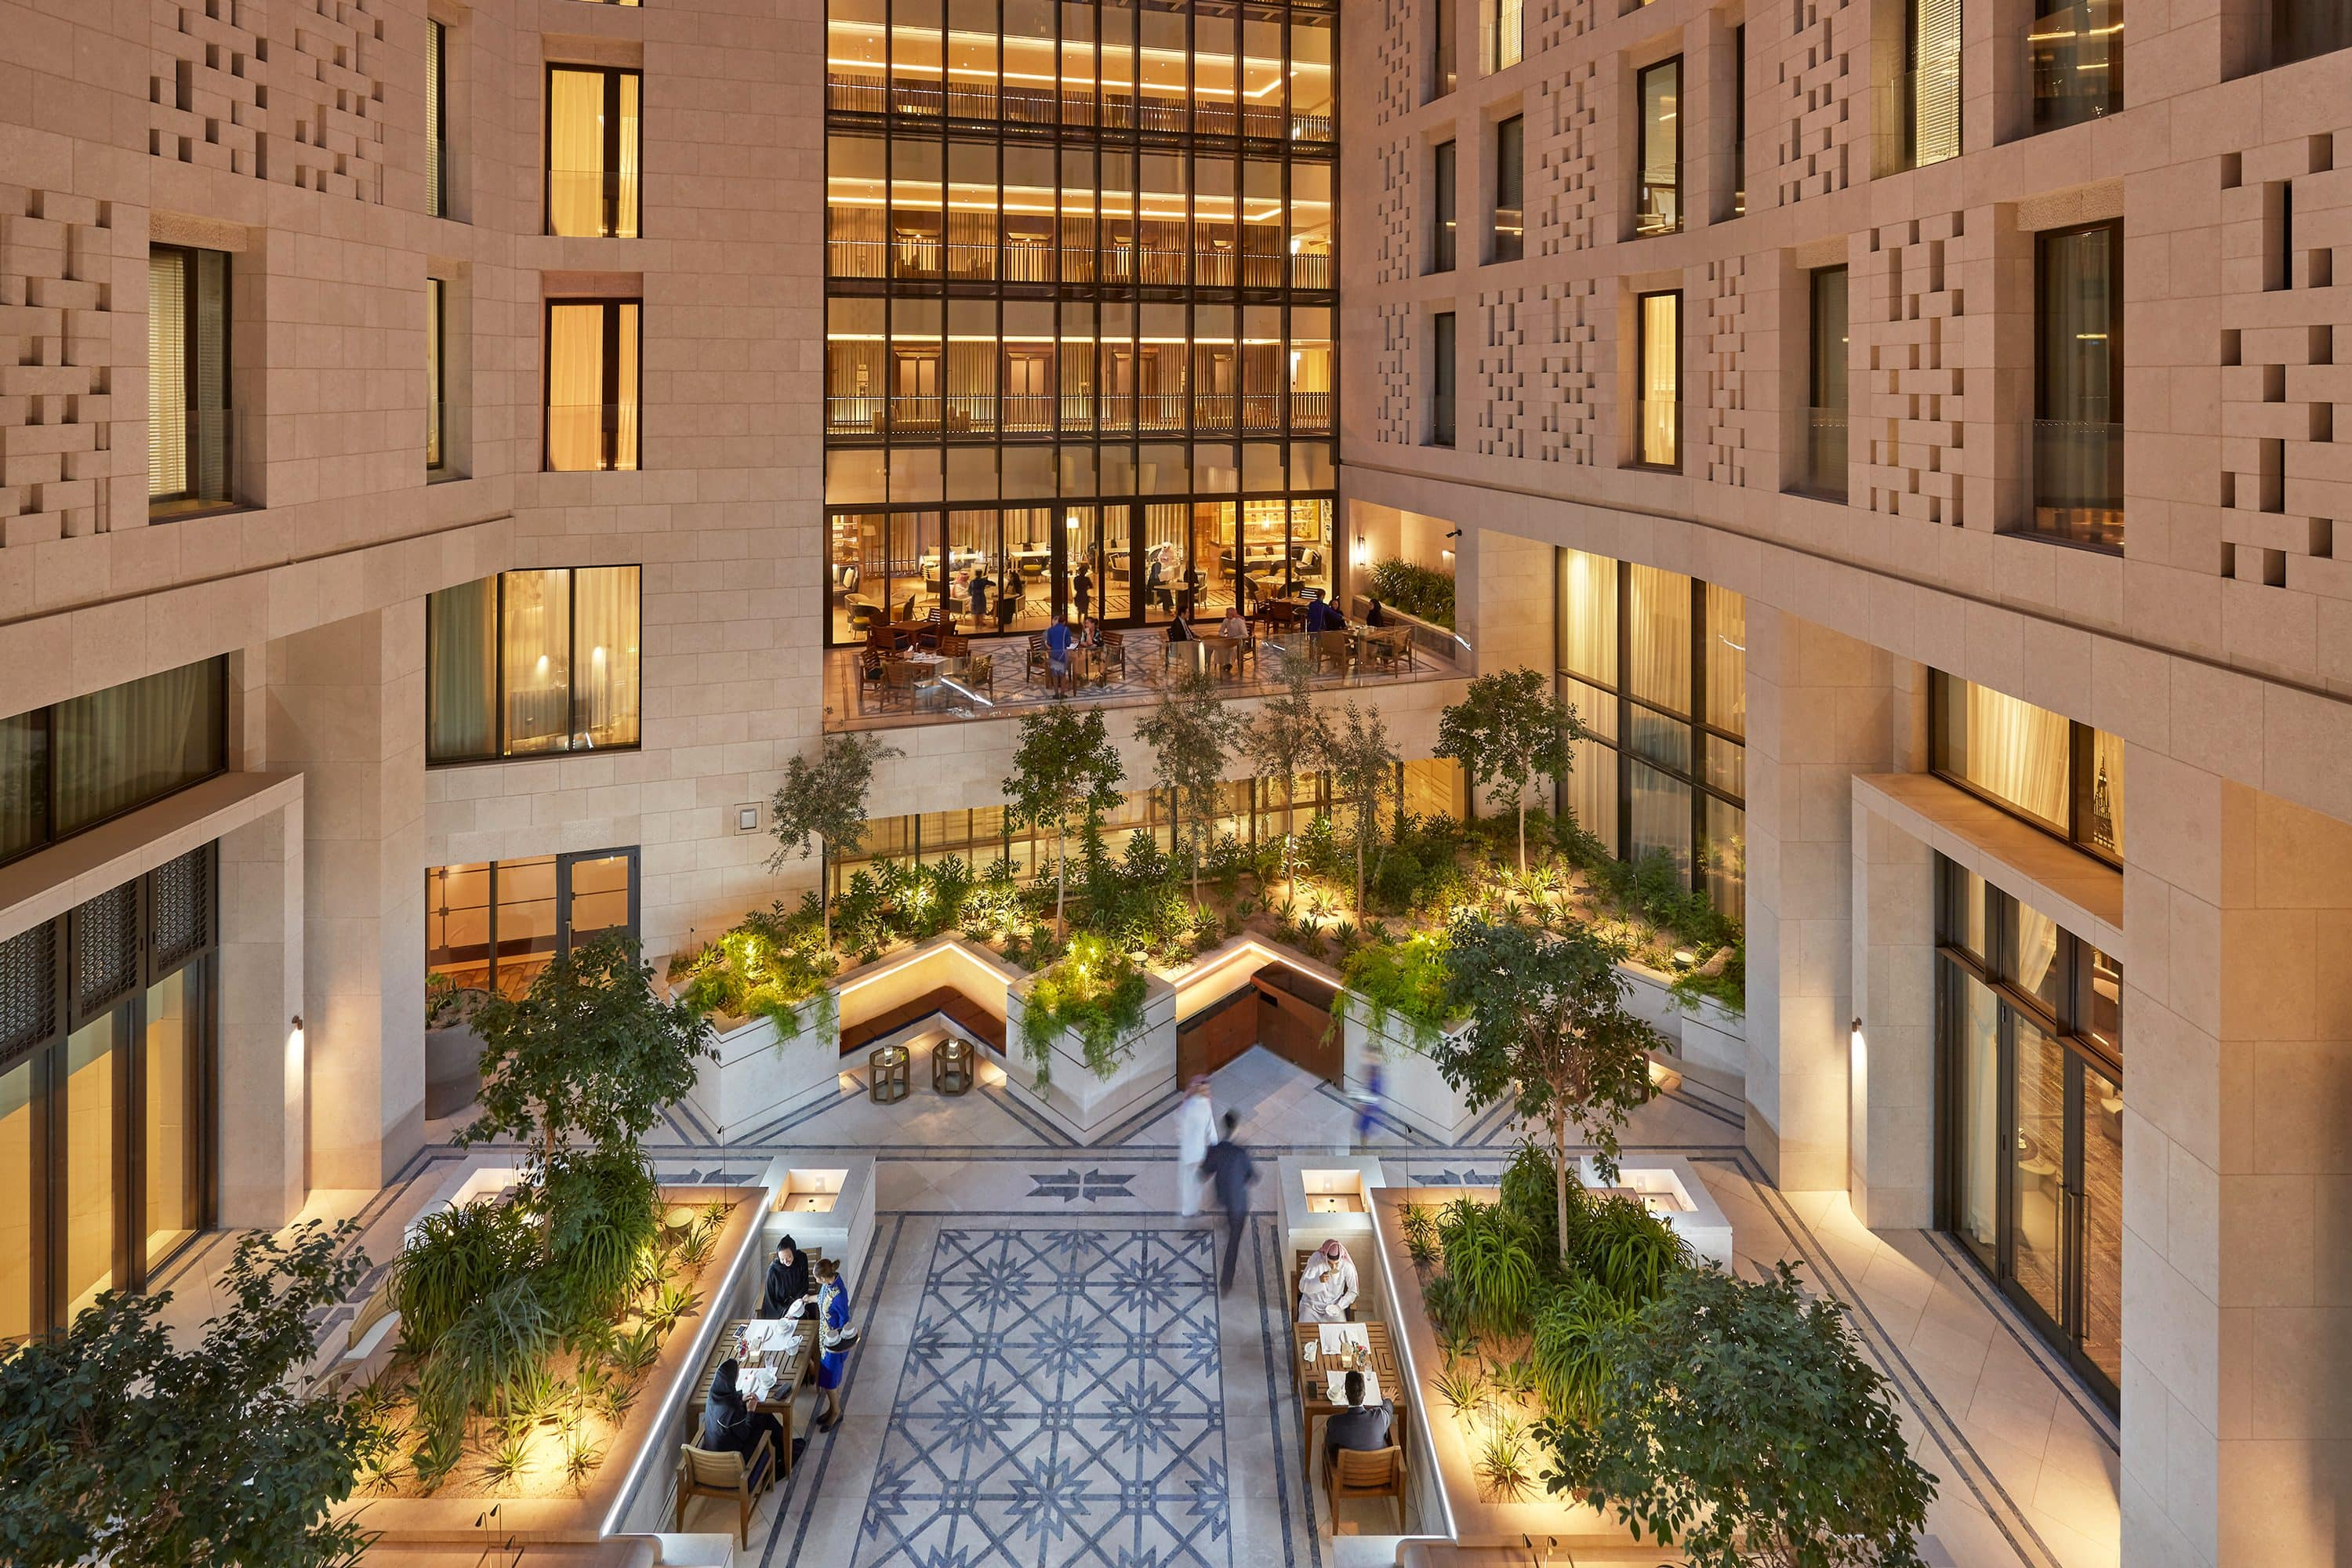 The lounge courtyard at Mandarin Oriental, Doha